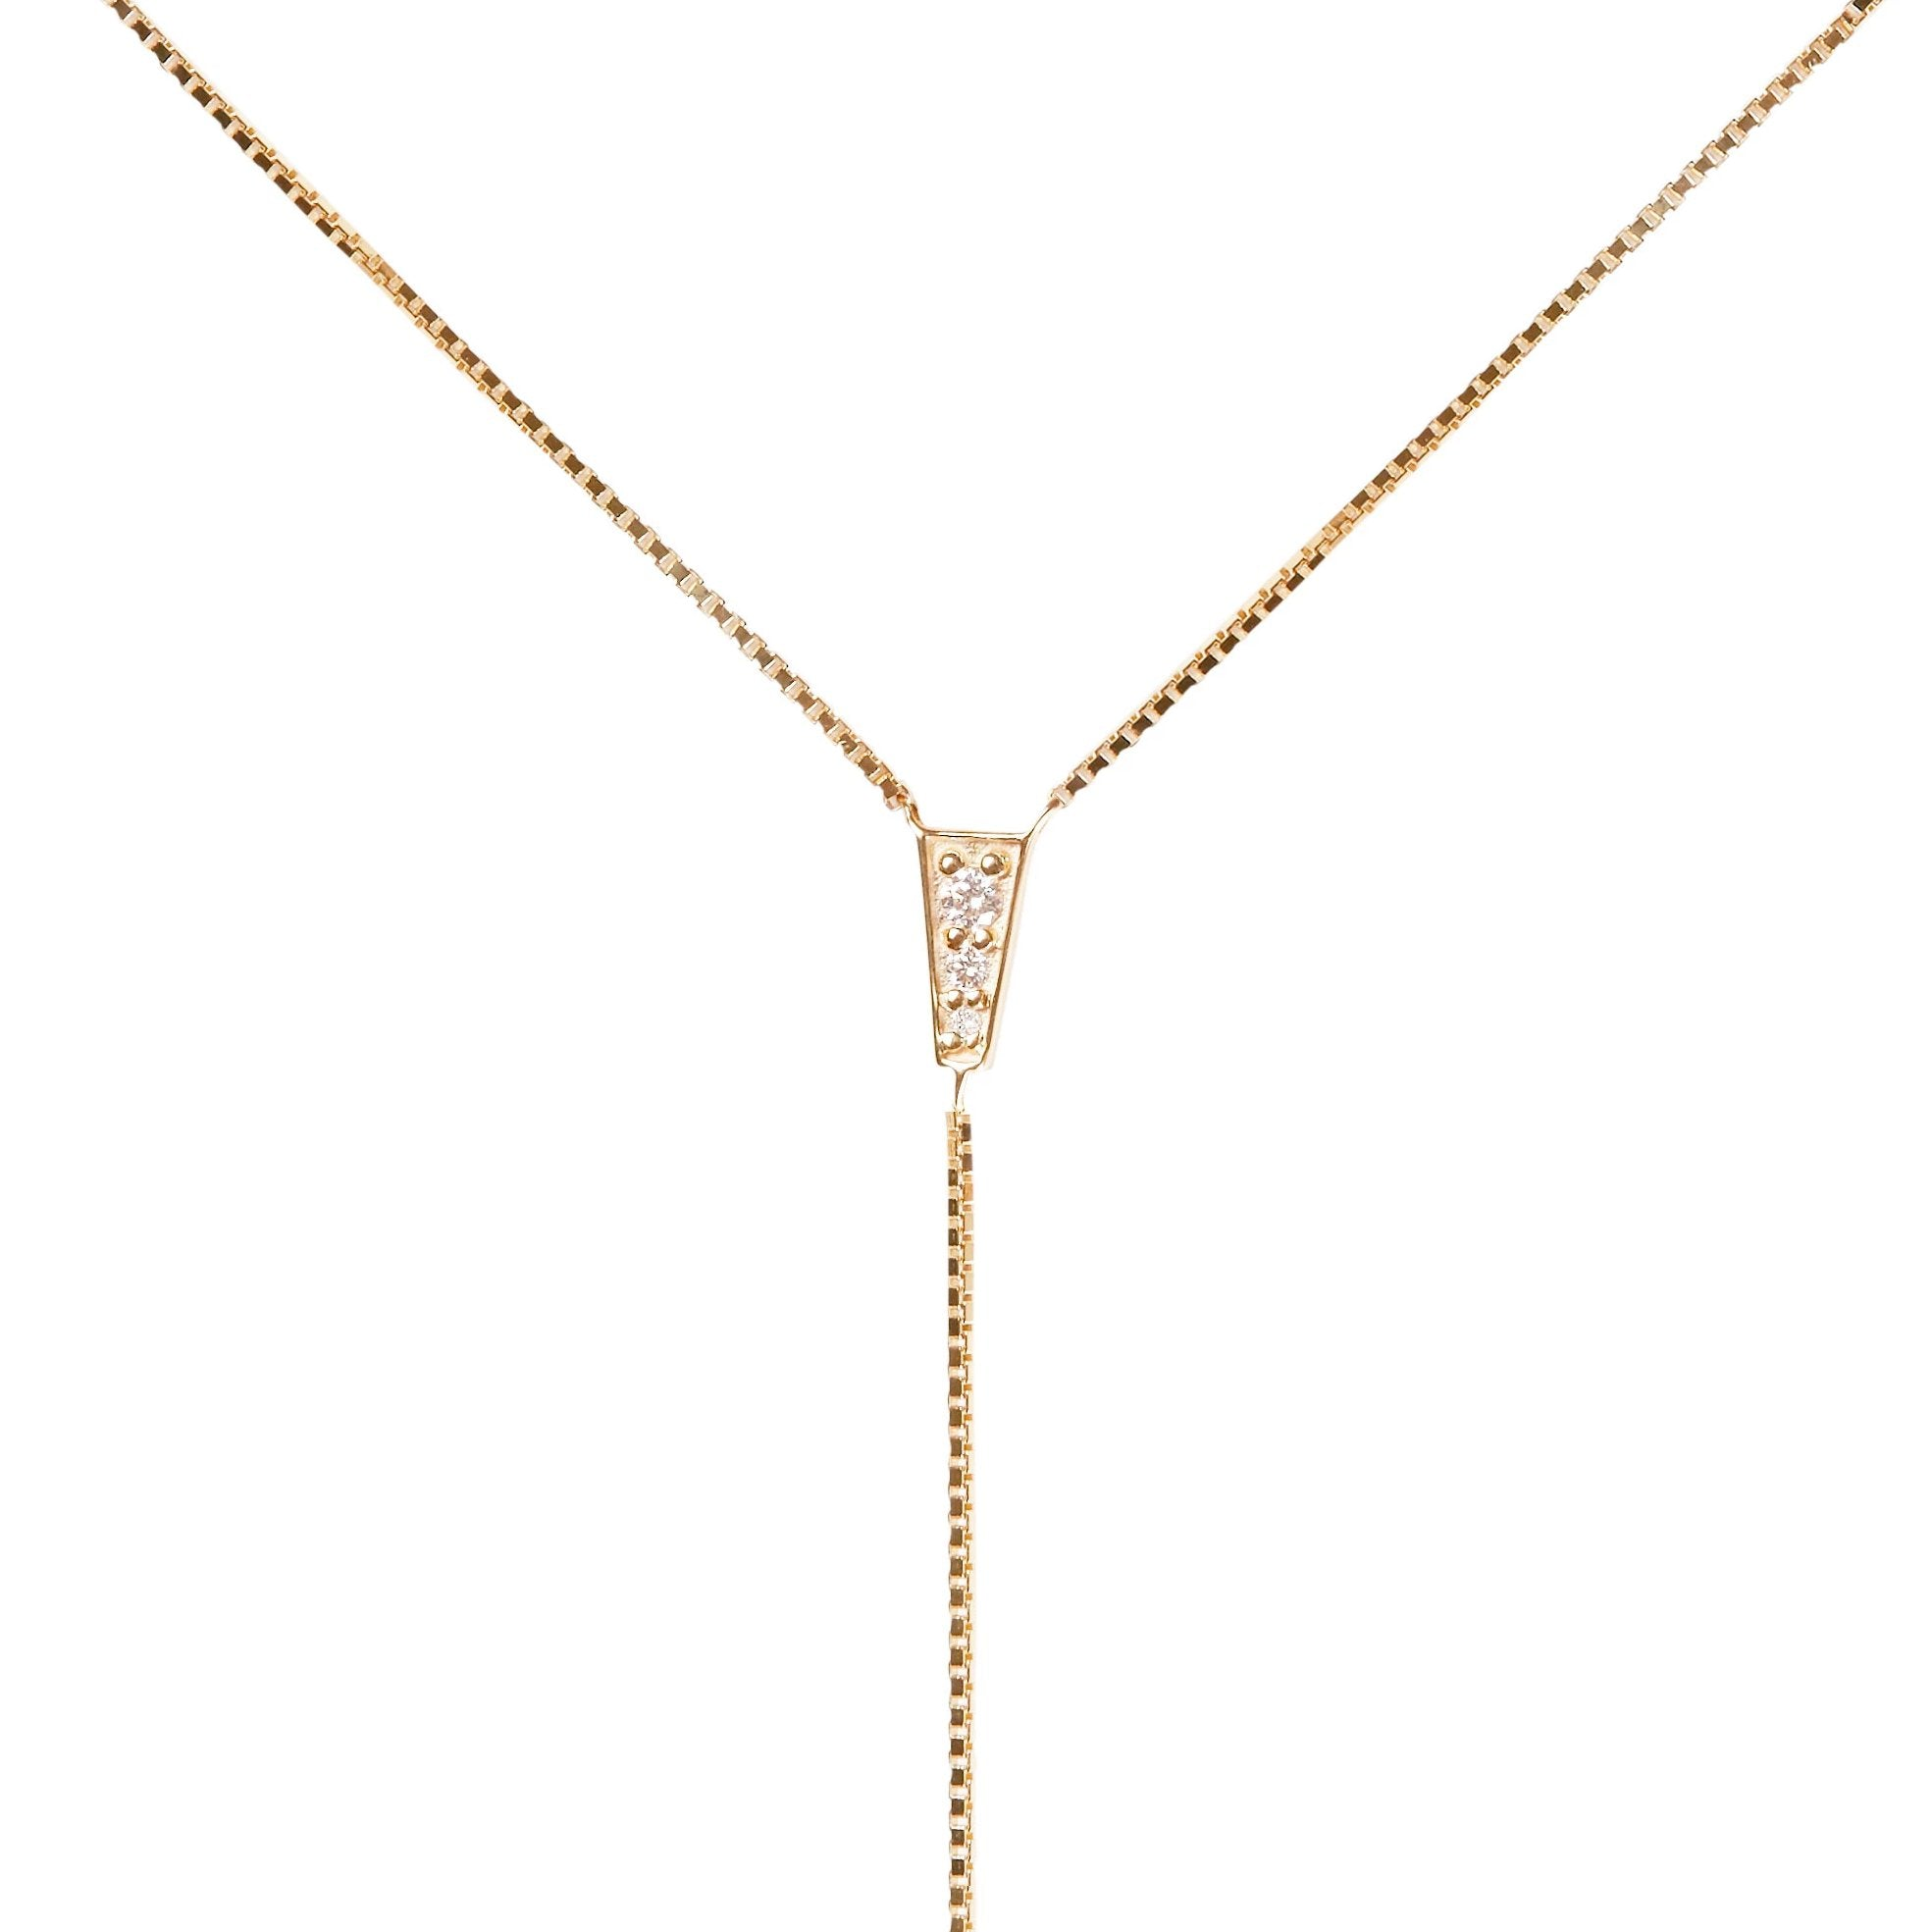 Blink Bodychain Yellow Gold Vermeil + White Diamonds